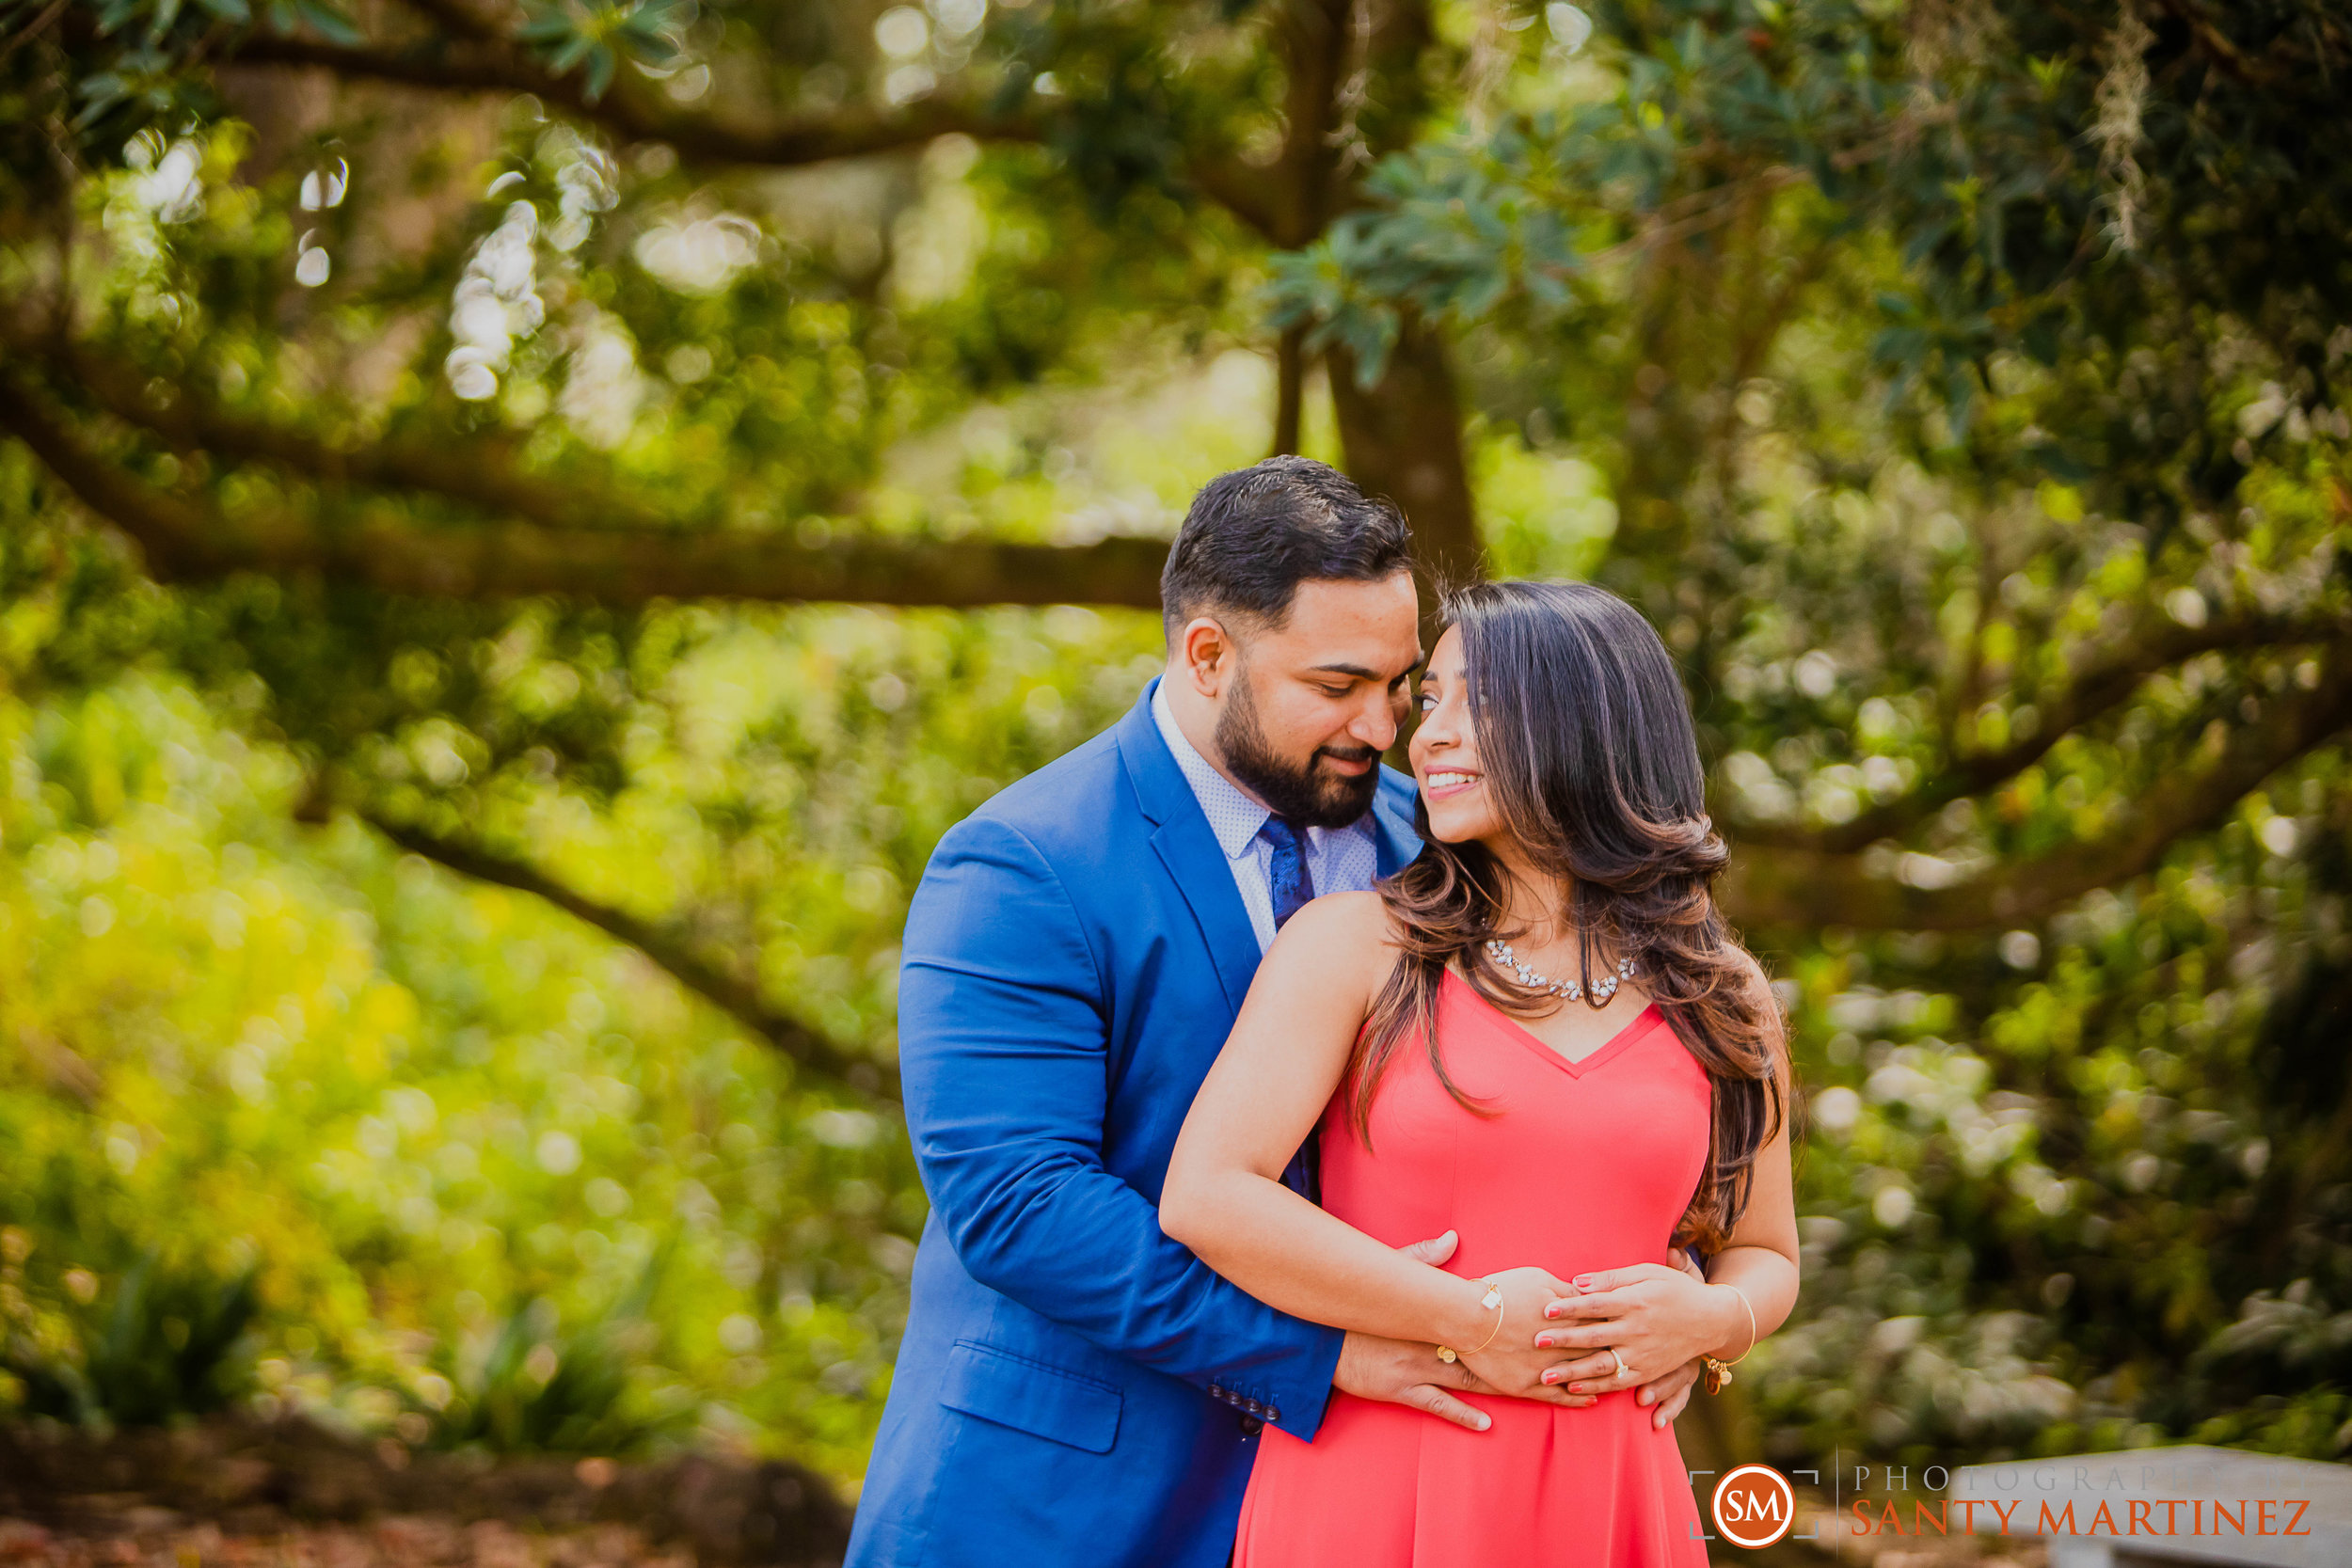 Engagement Session Bok Tower Gardens - Santy Martinez Photography-2.jpg